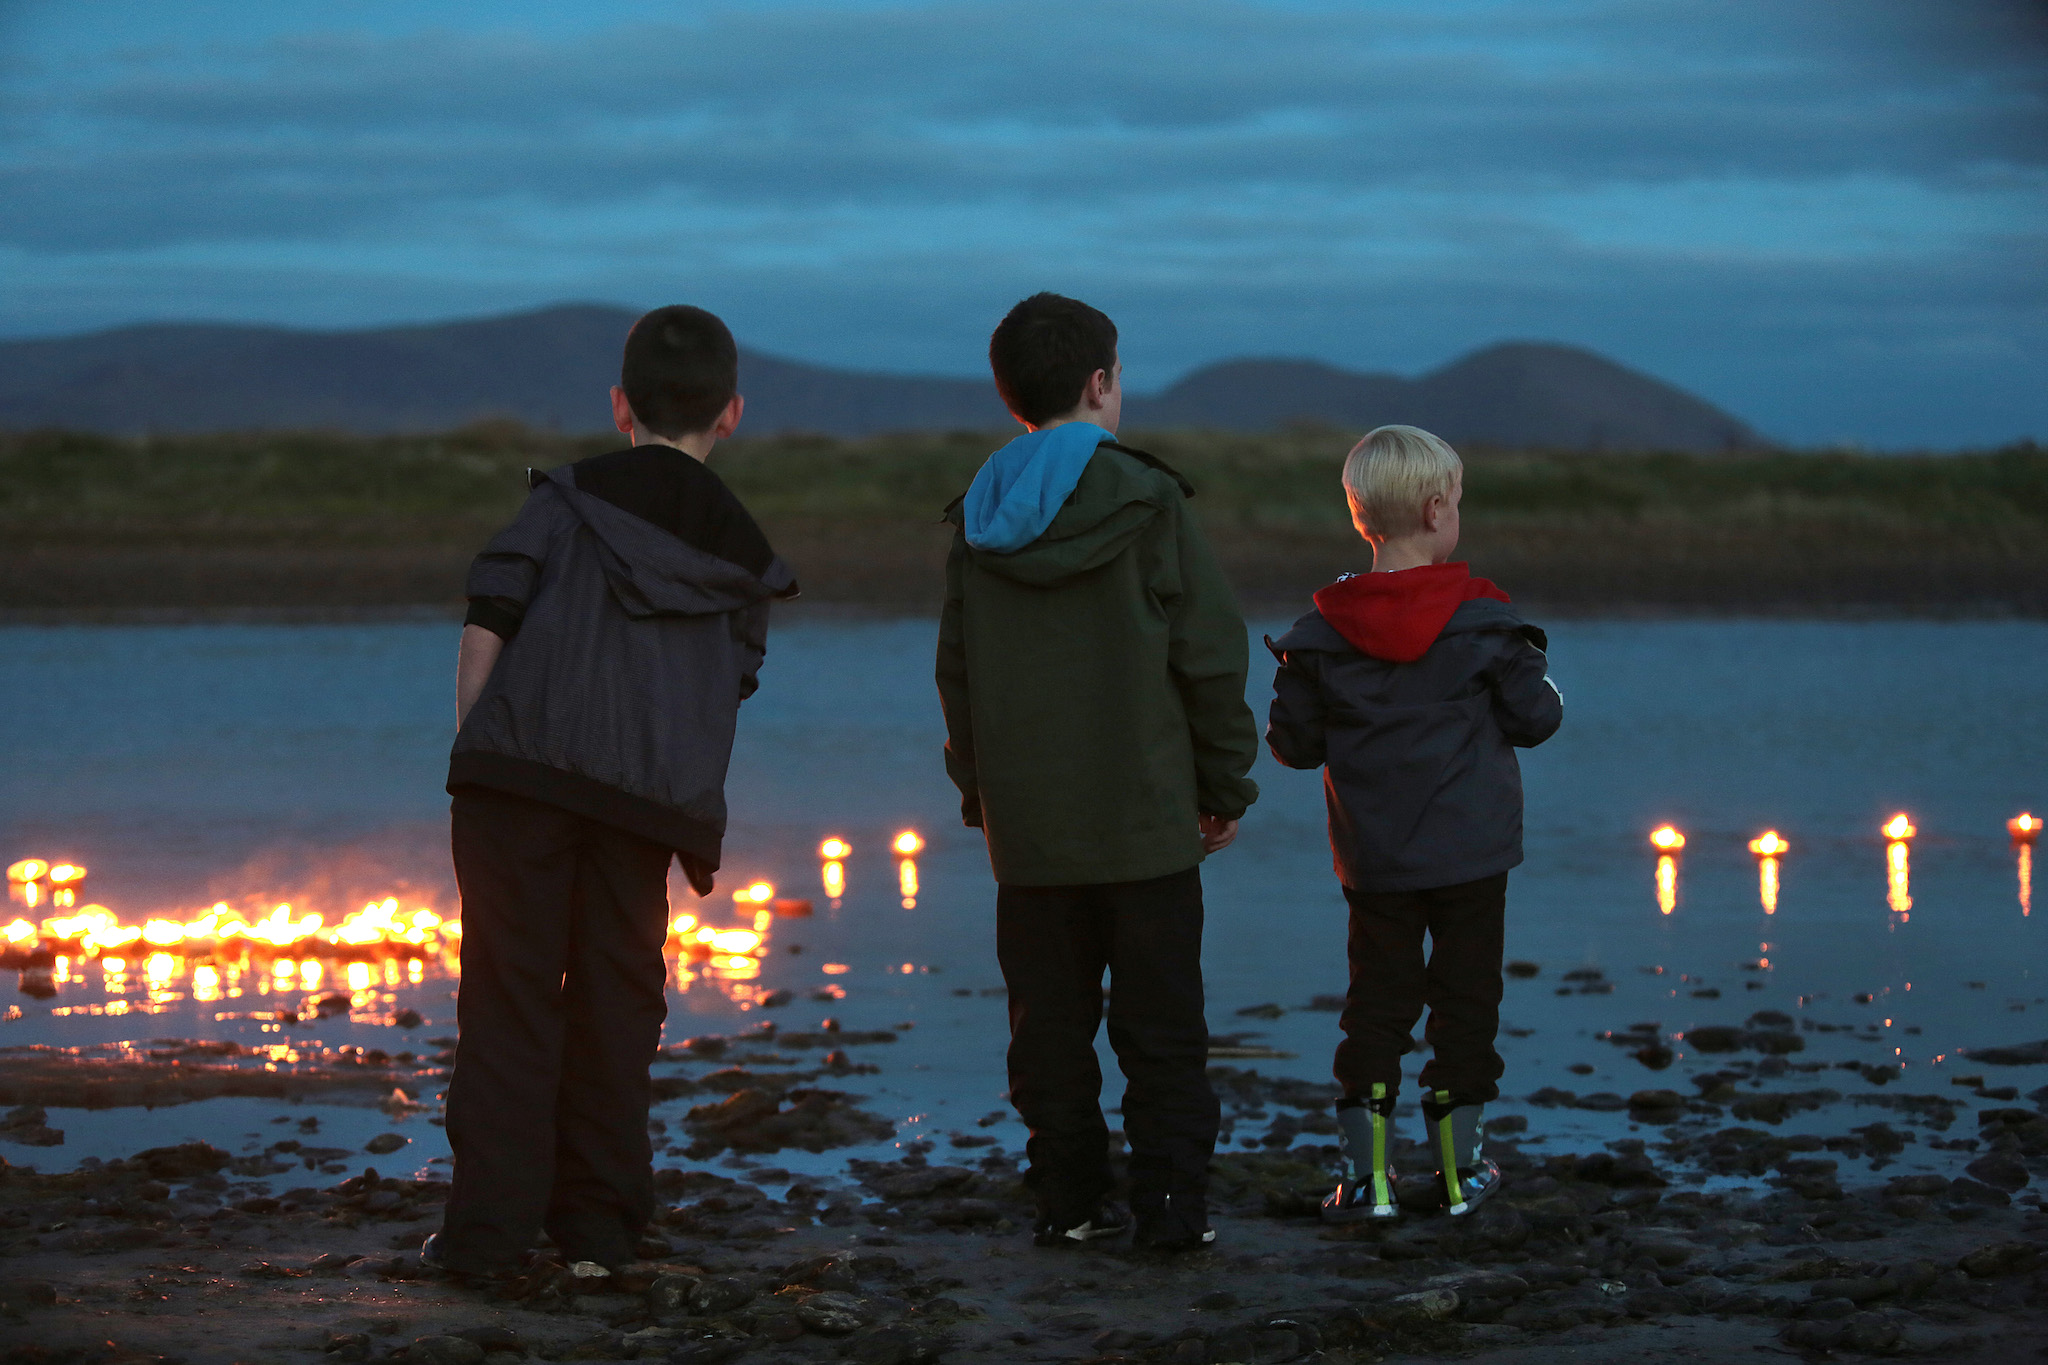 Discover Kerry | Killarney | Children on a beach